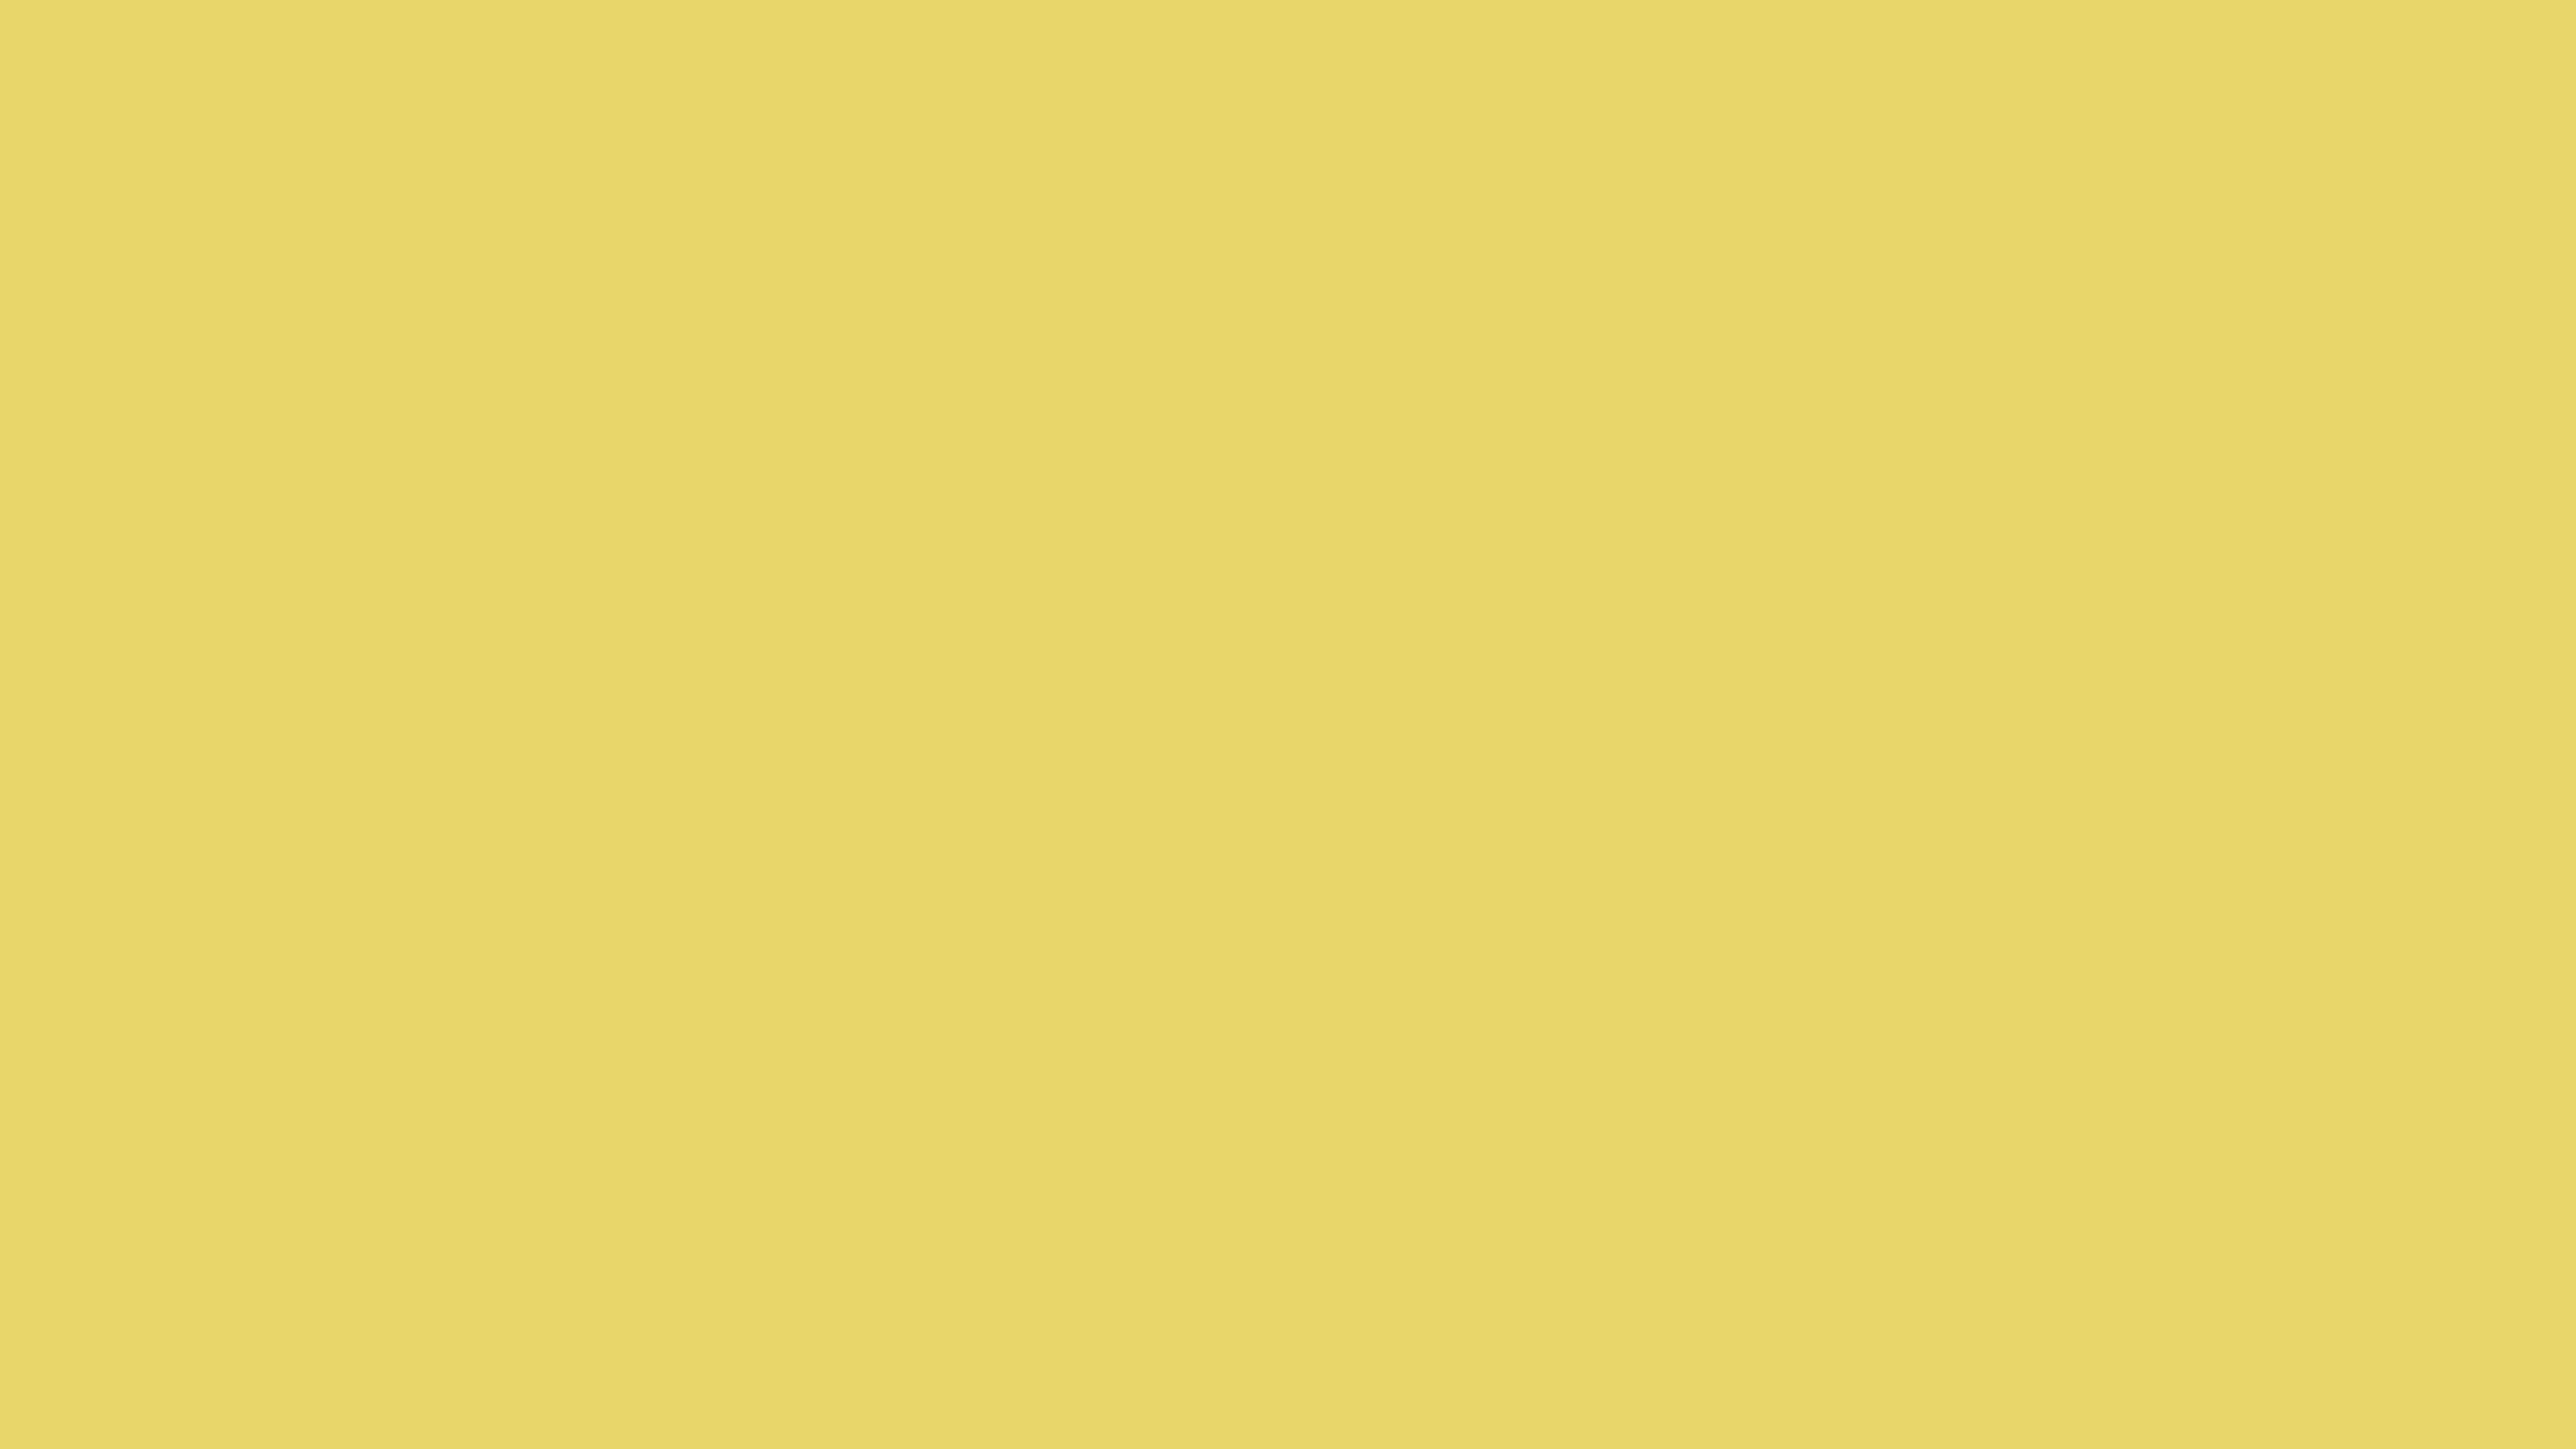 3840x2160 Arylide Yellow Solid Color Background